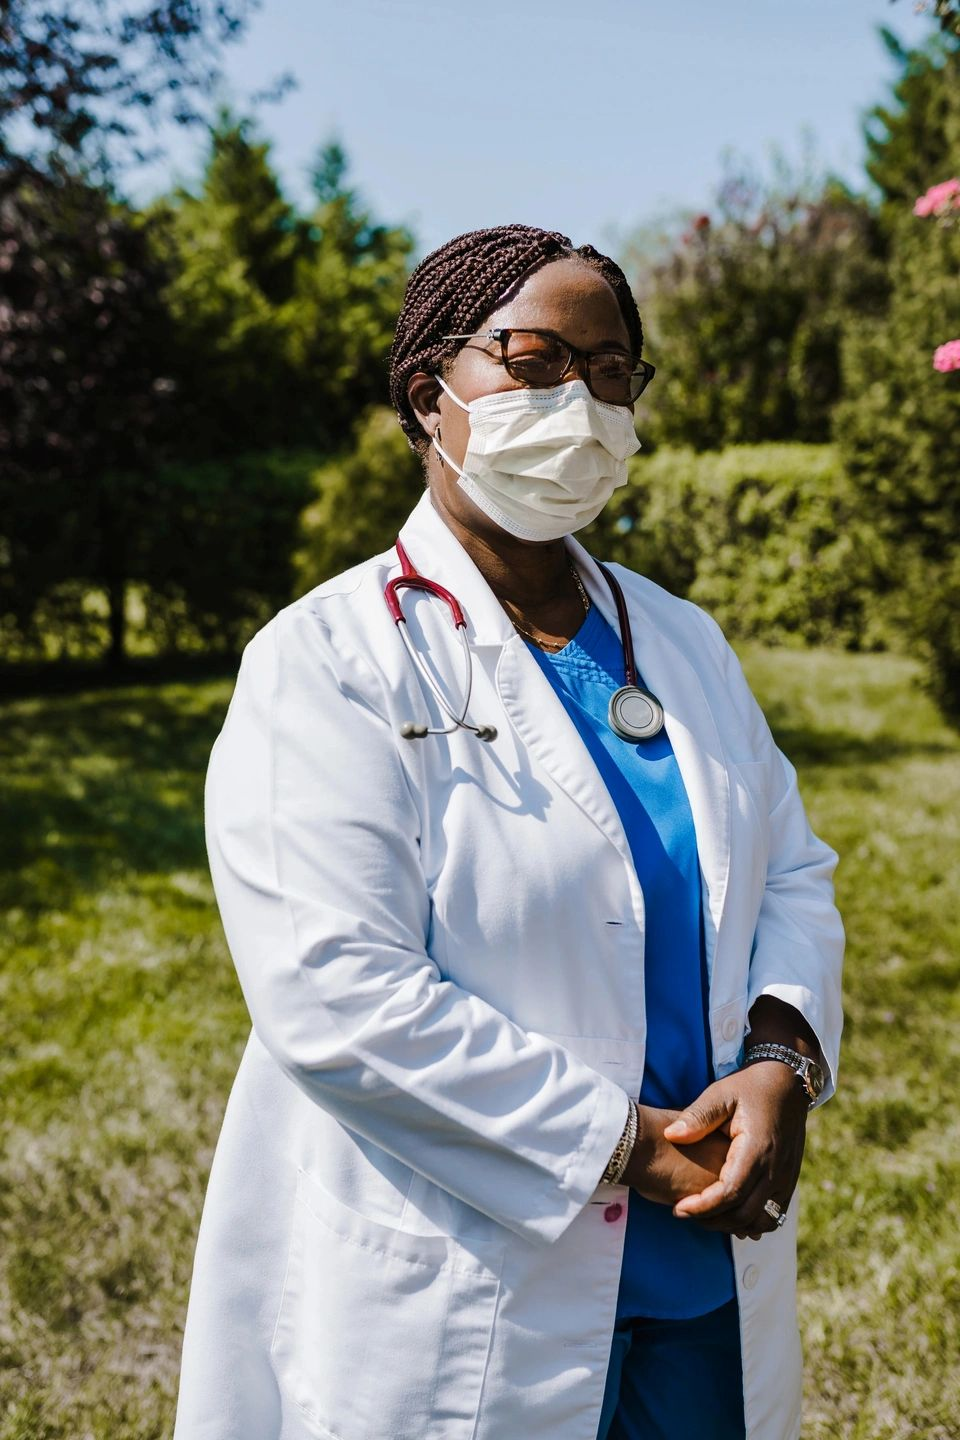 female doctor with white coat and mask